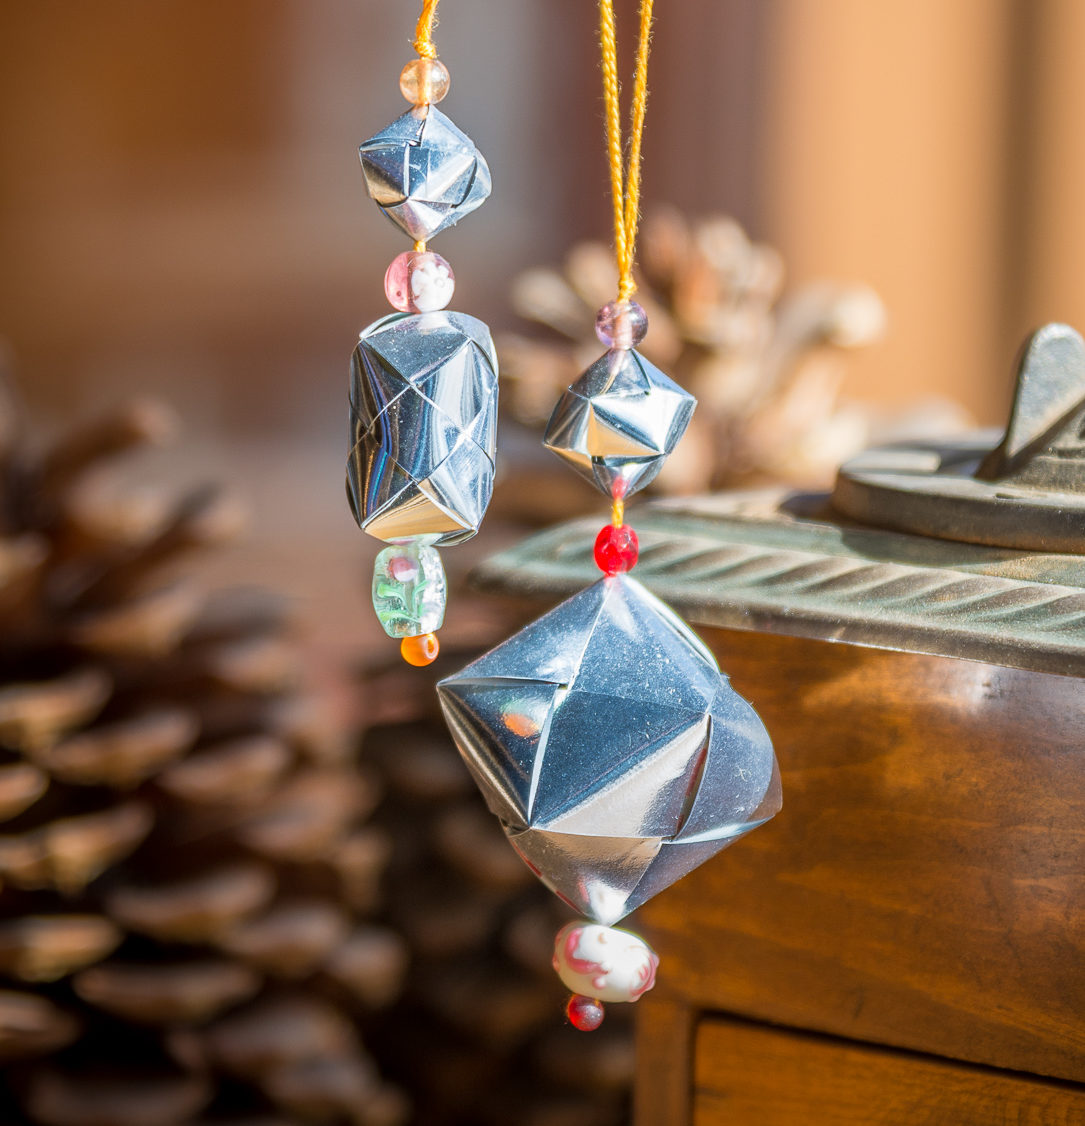 Chip Bag Woven Bead Ornaments at the Duluth Folk School